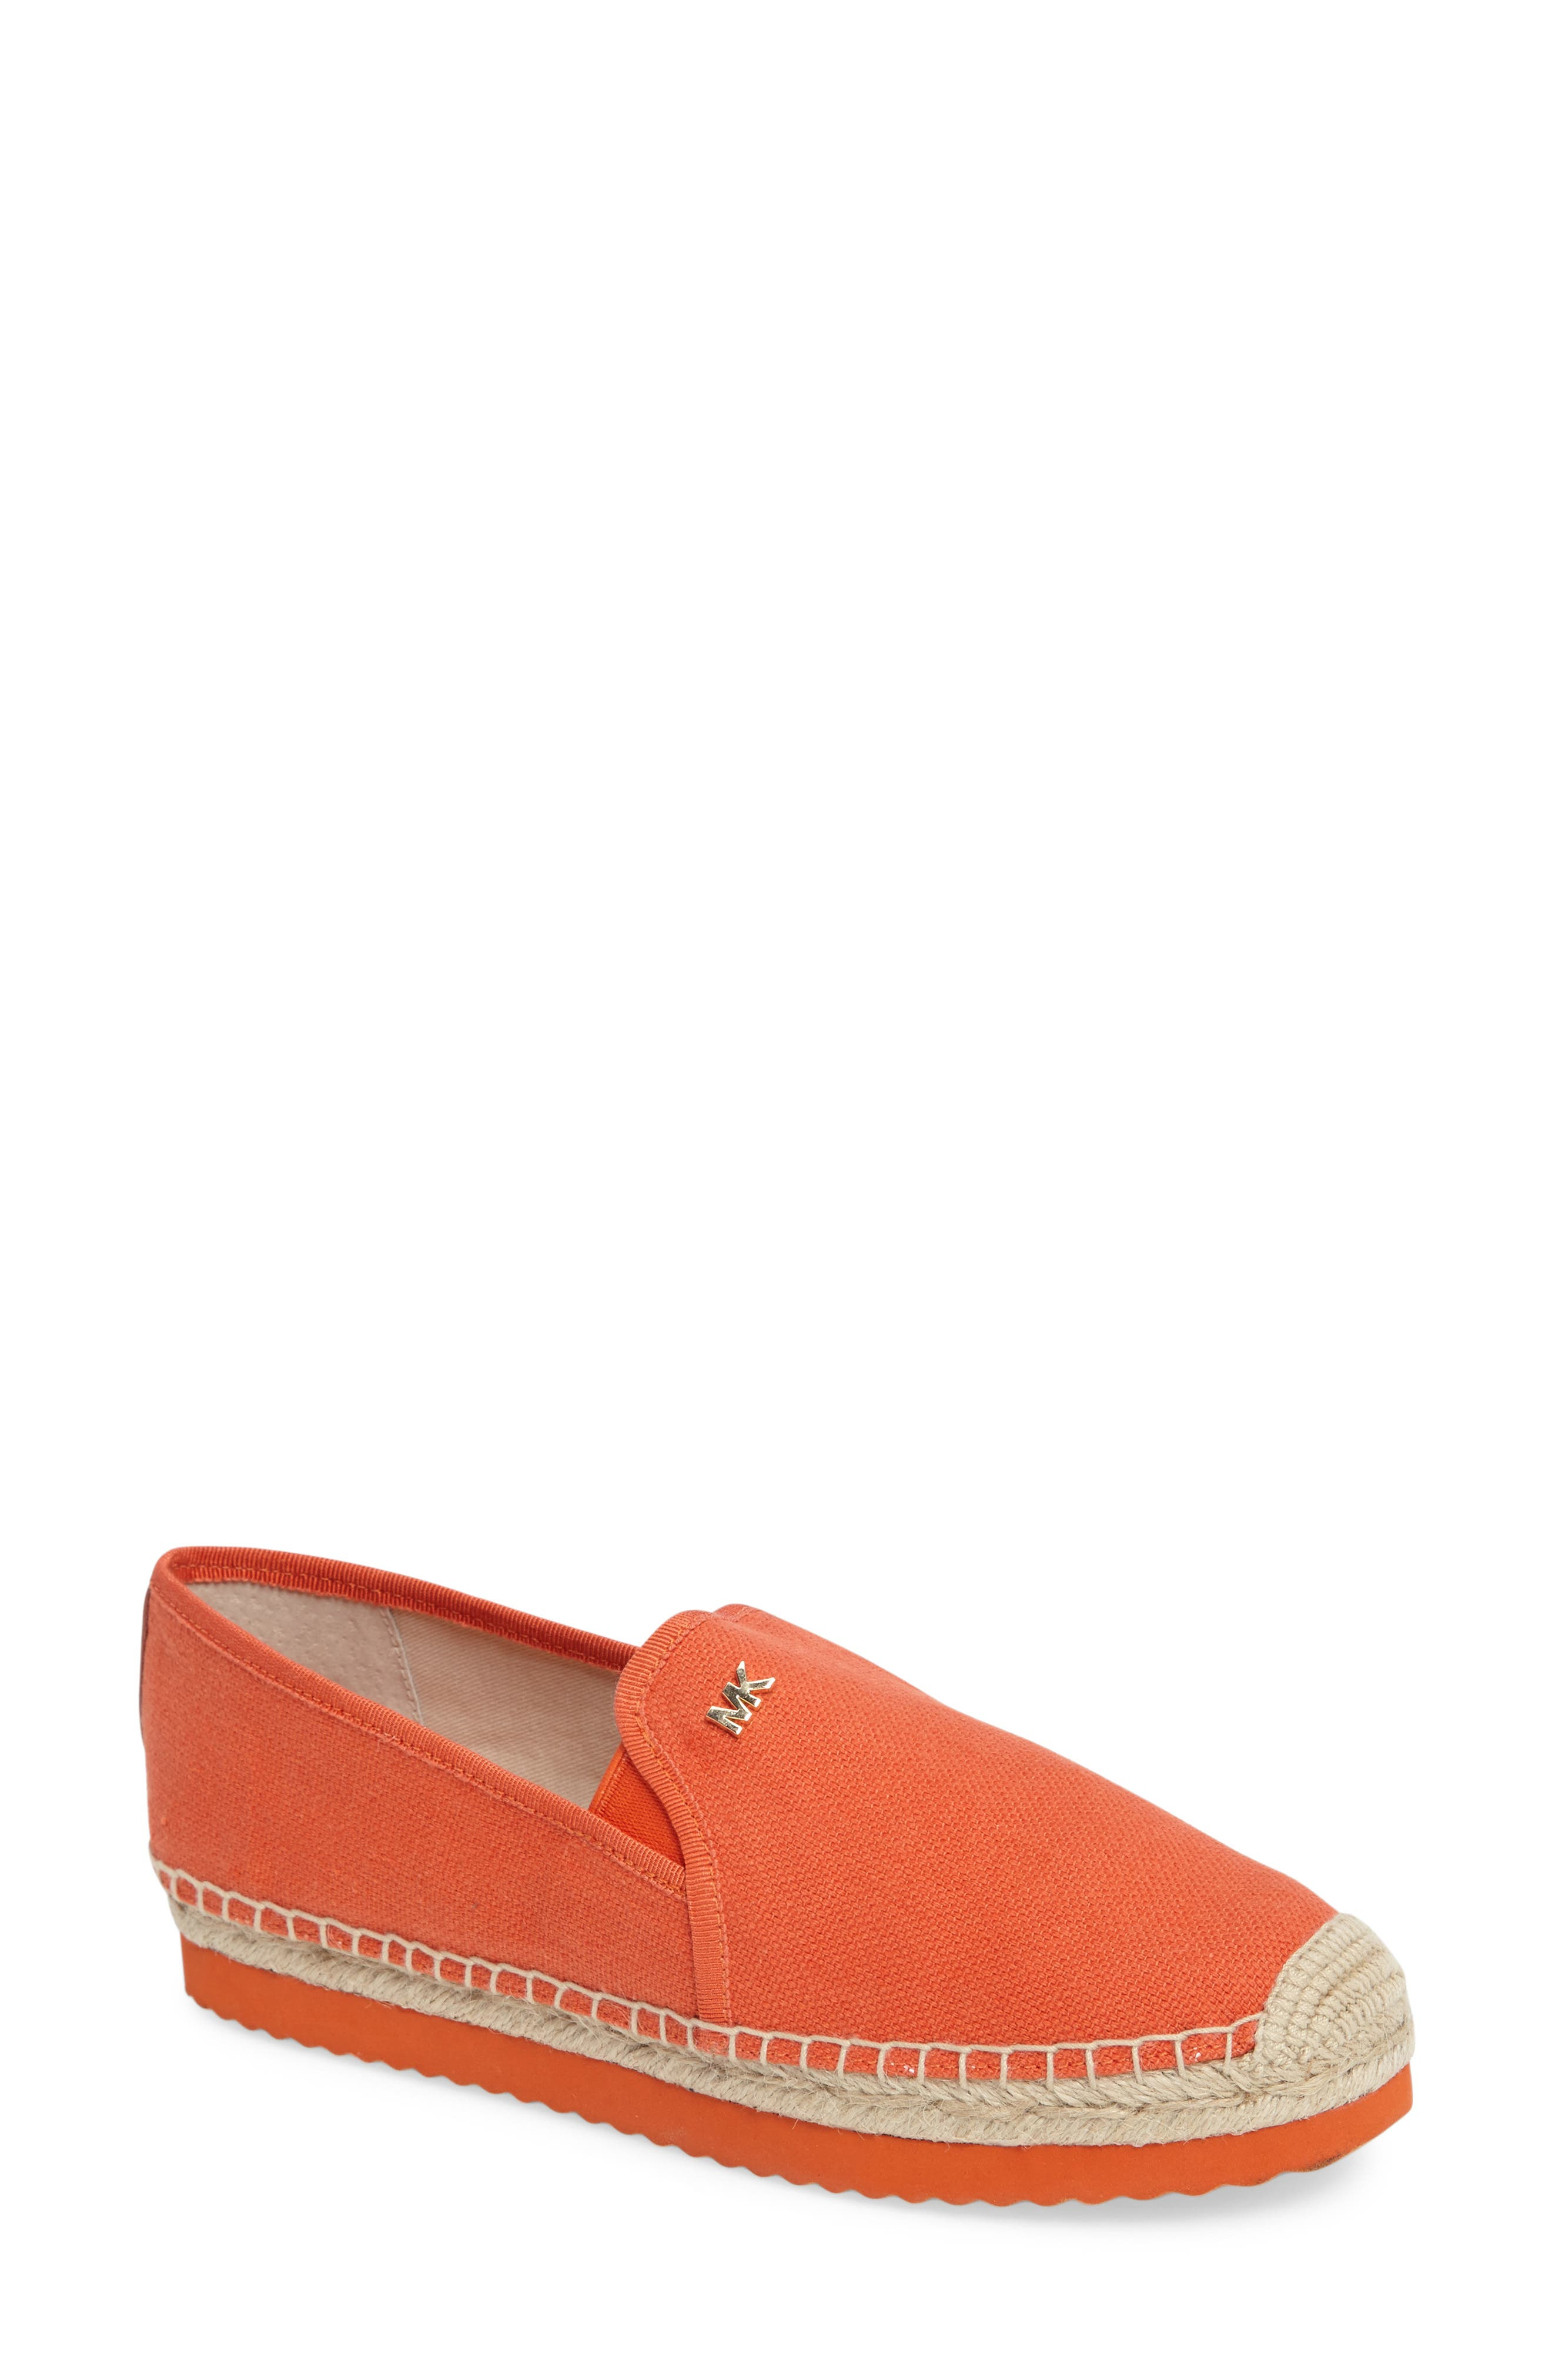 Hastings Espadrille Slip-On,                             Main thumbnail 7, color,